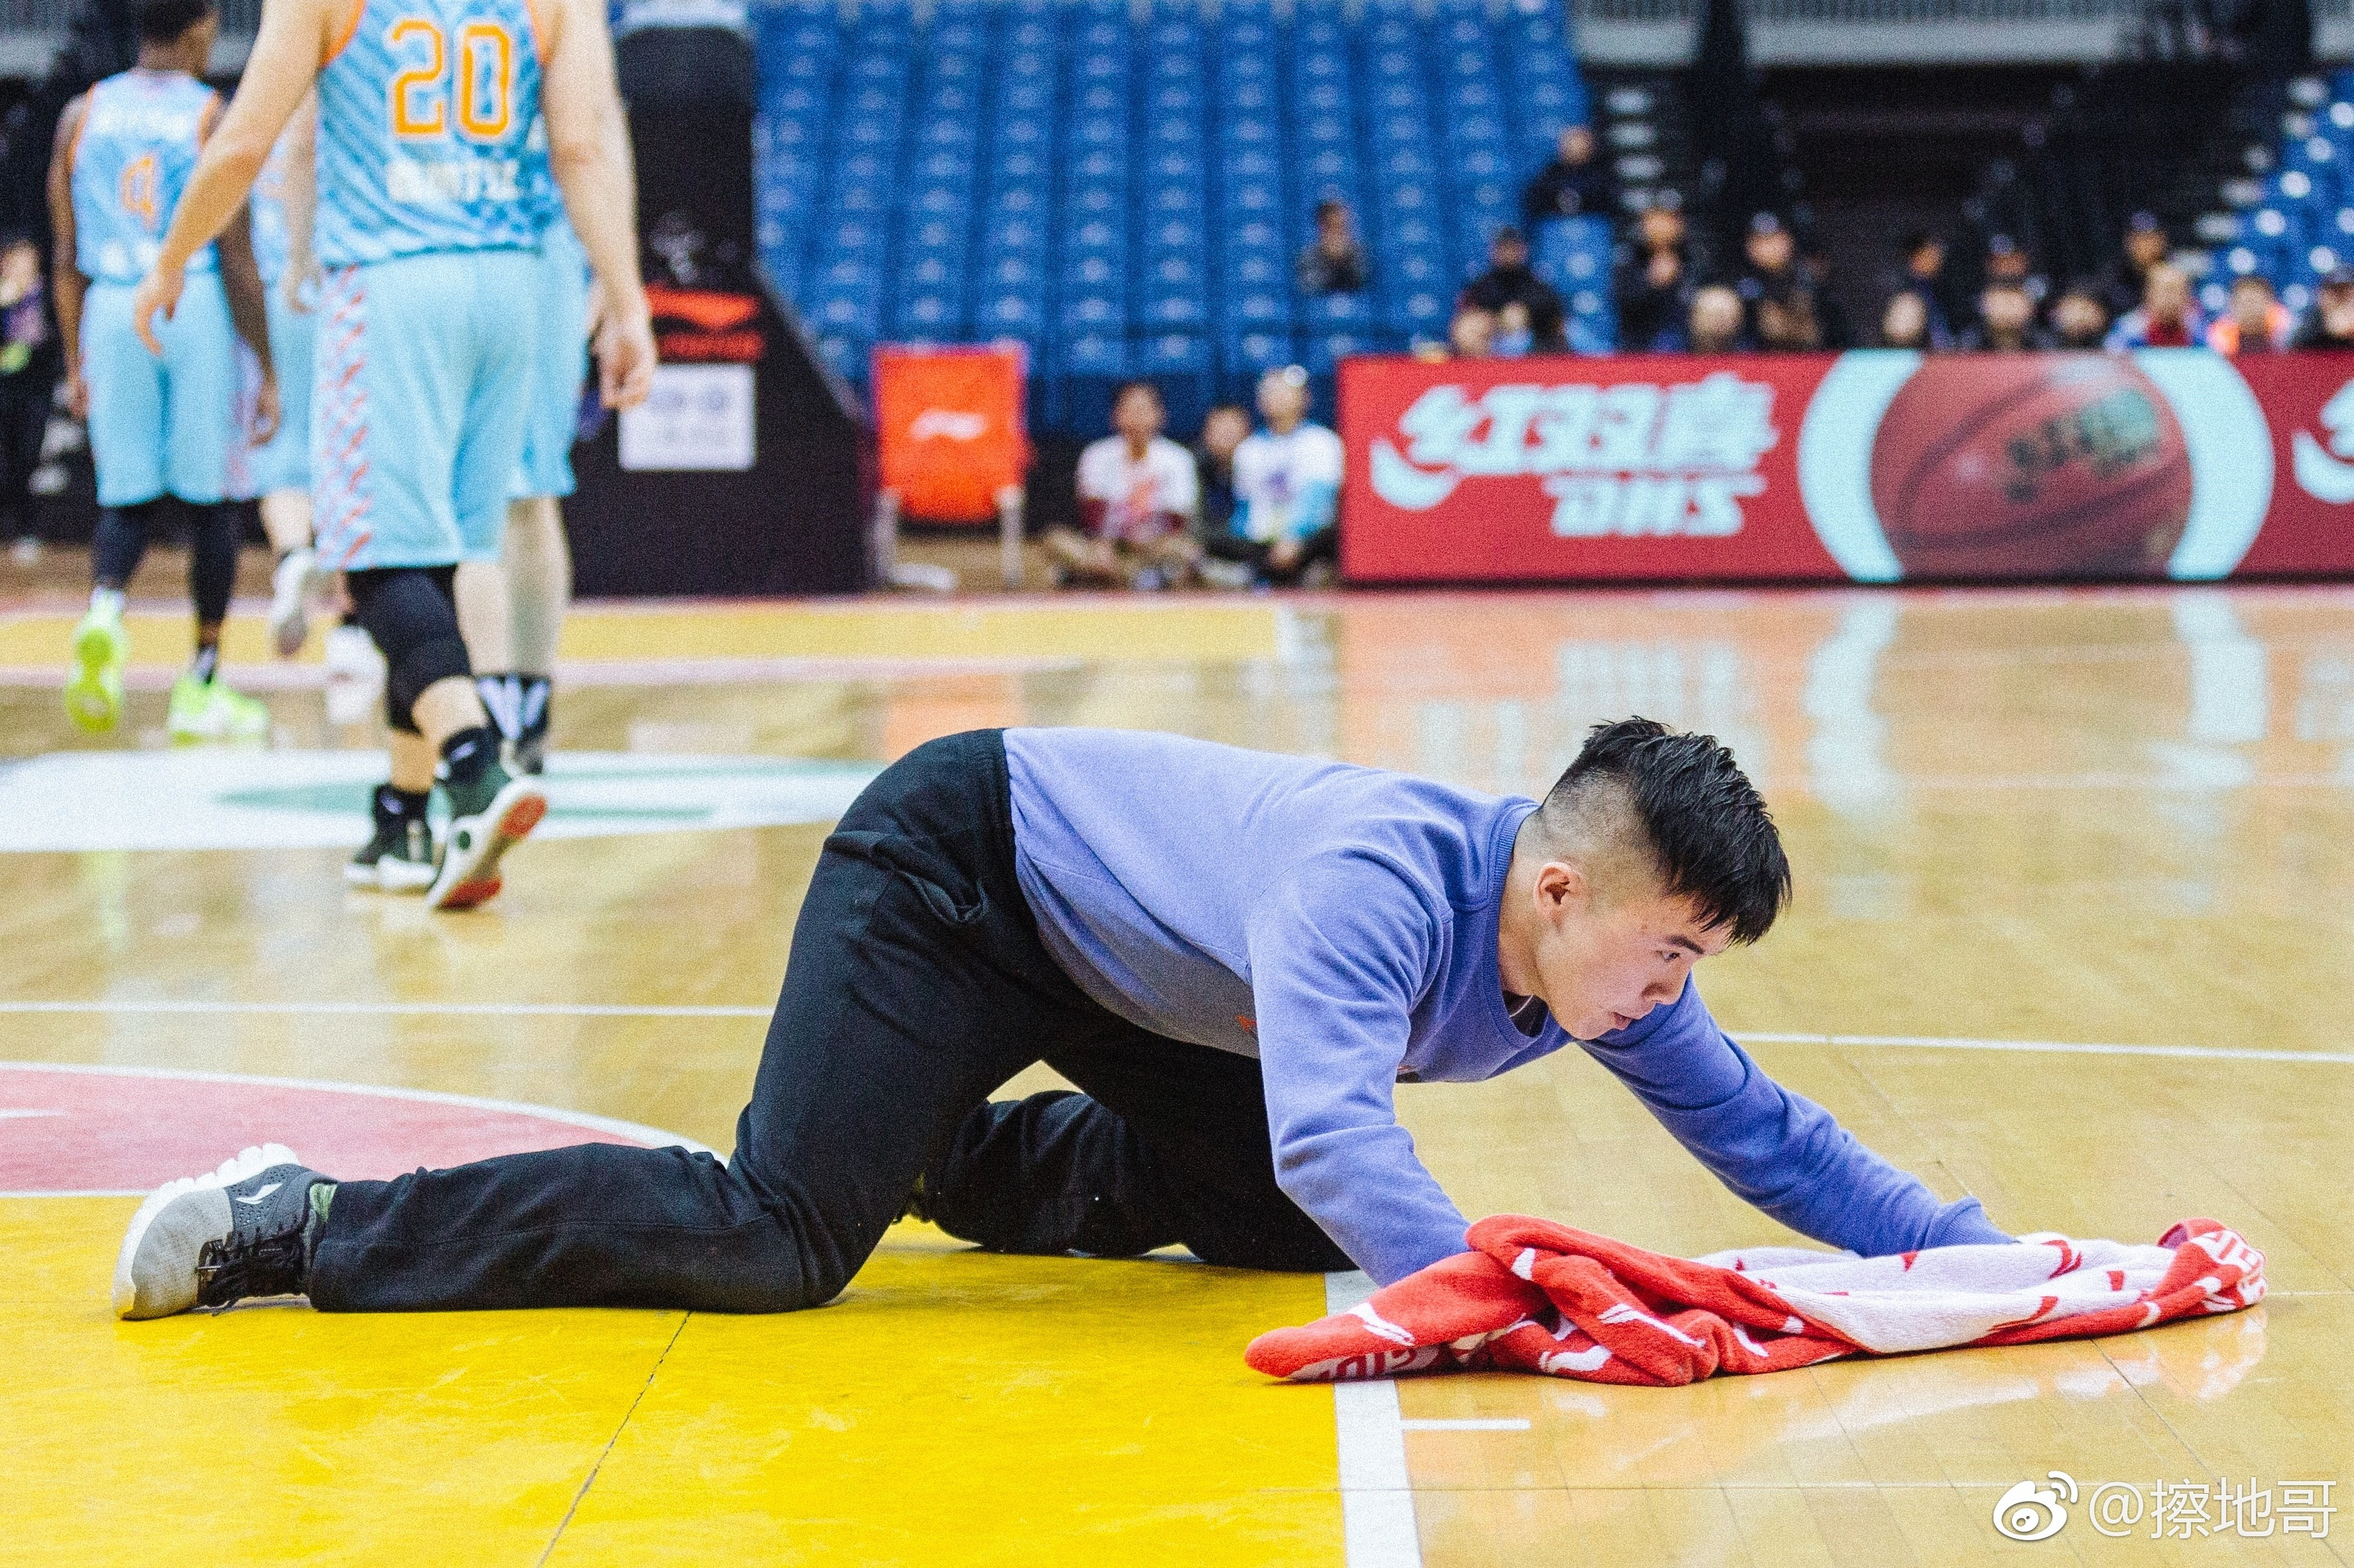 The Chinese Basketball Court Cleaner